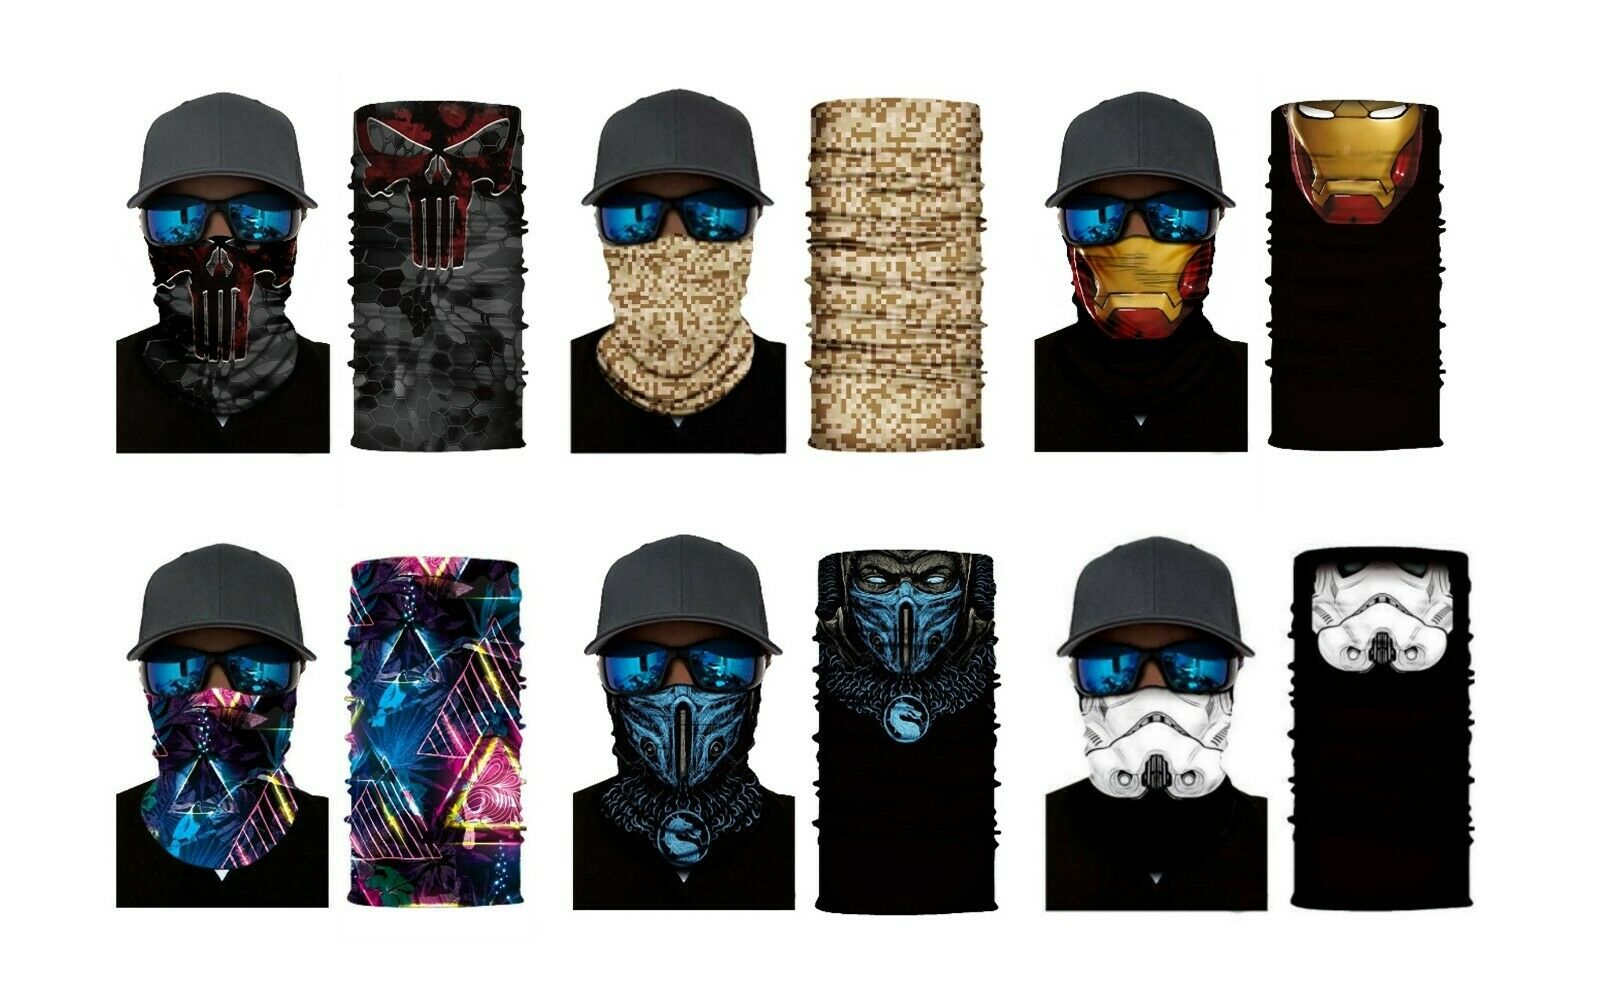 Wholesale - Face Covering / Neck Gaiter / Headwear - in 9 Designs